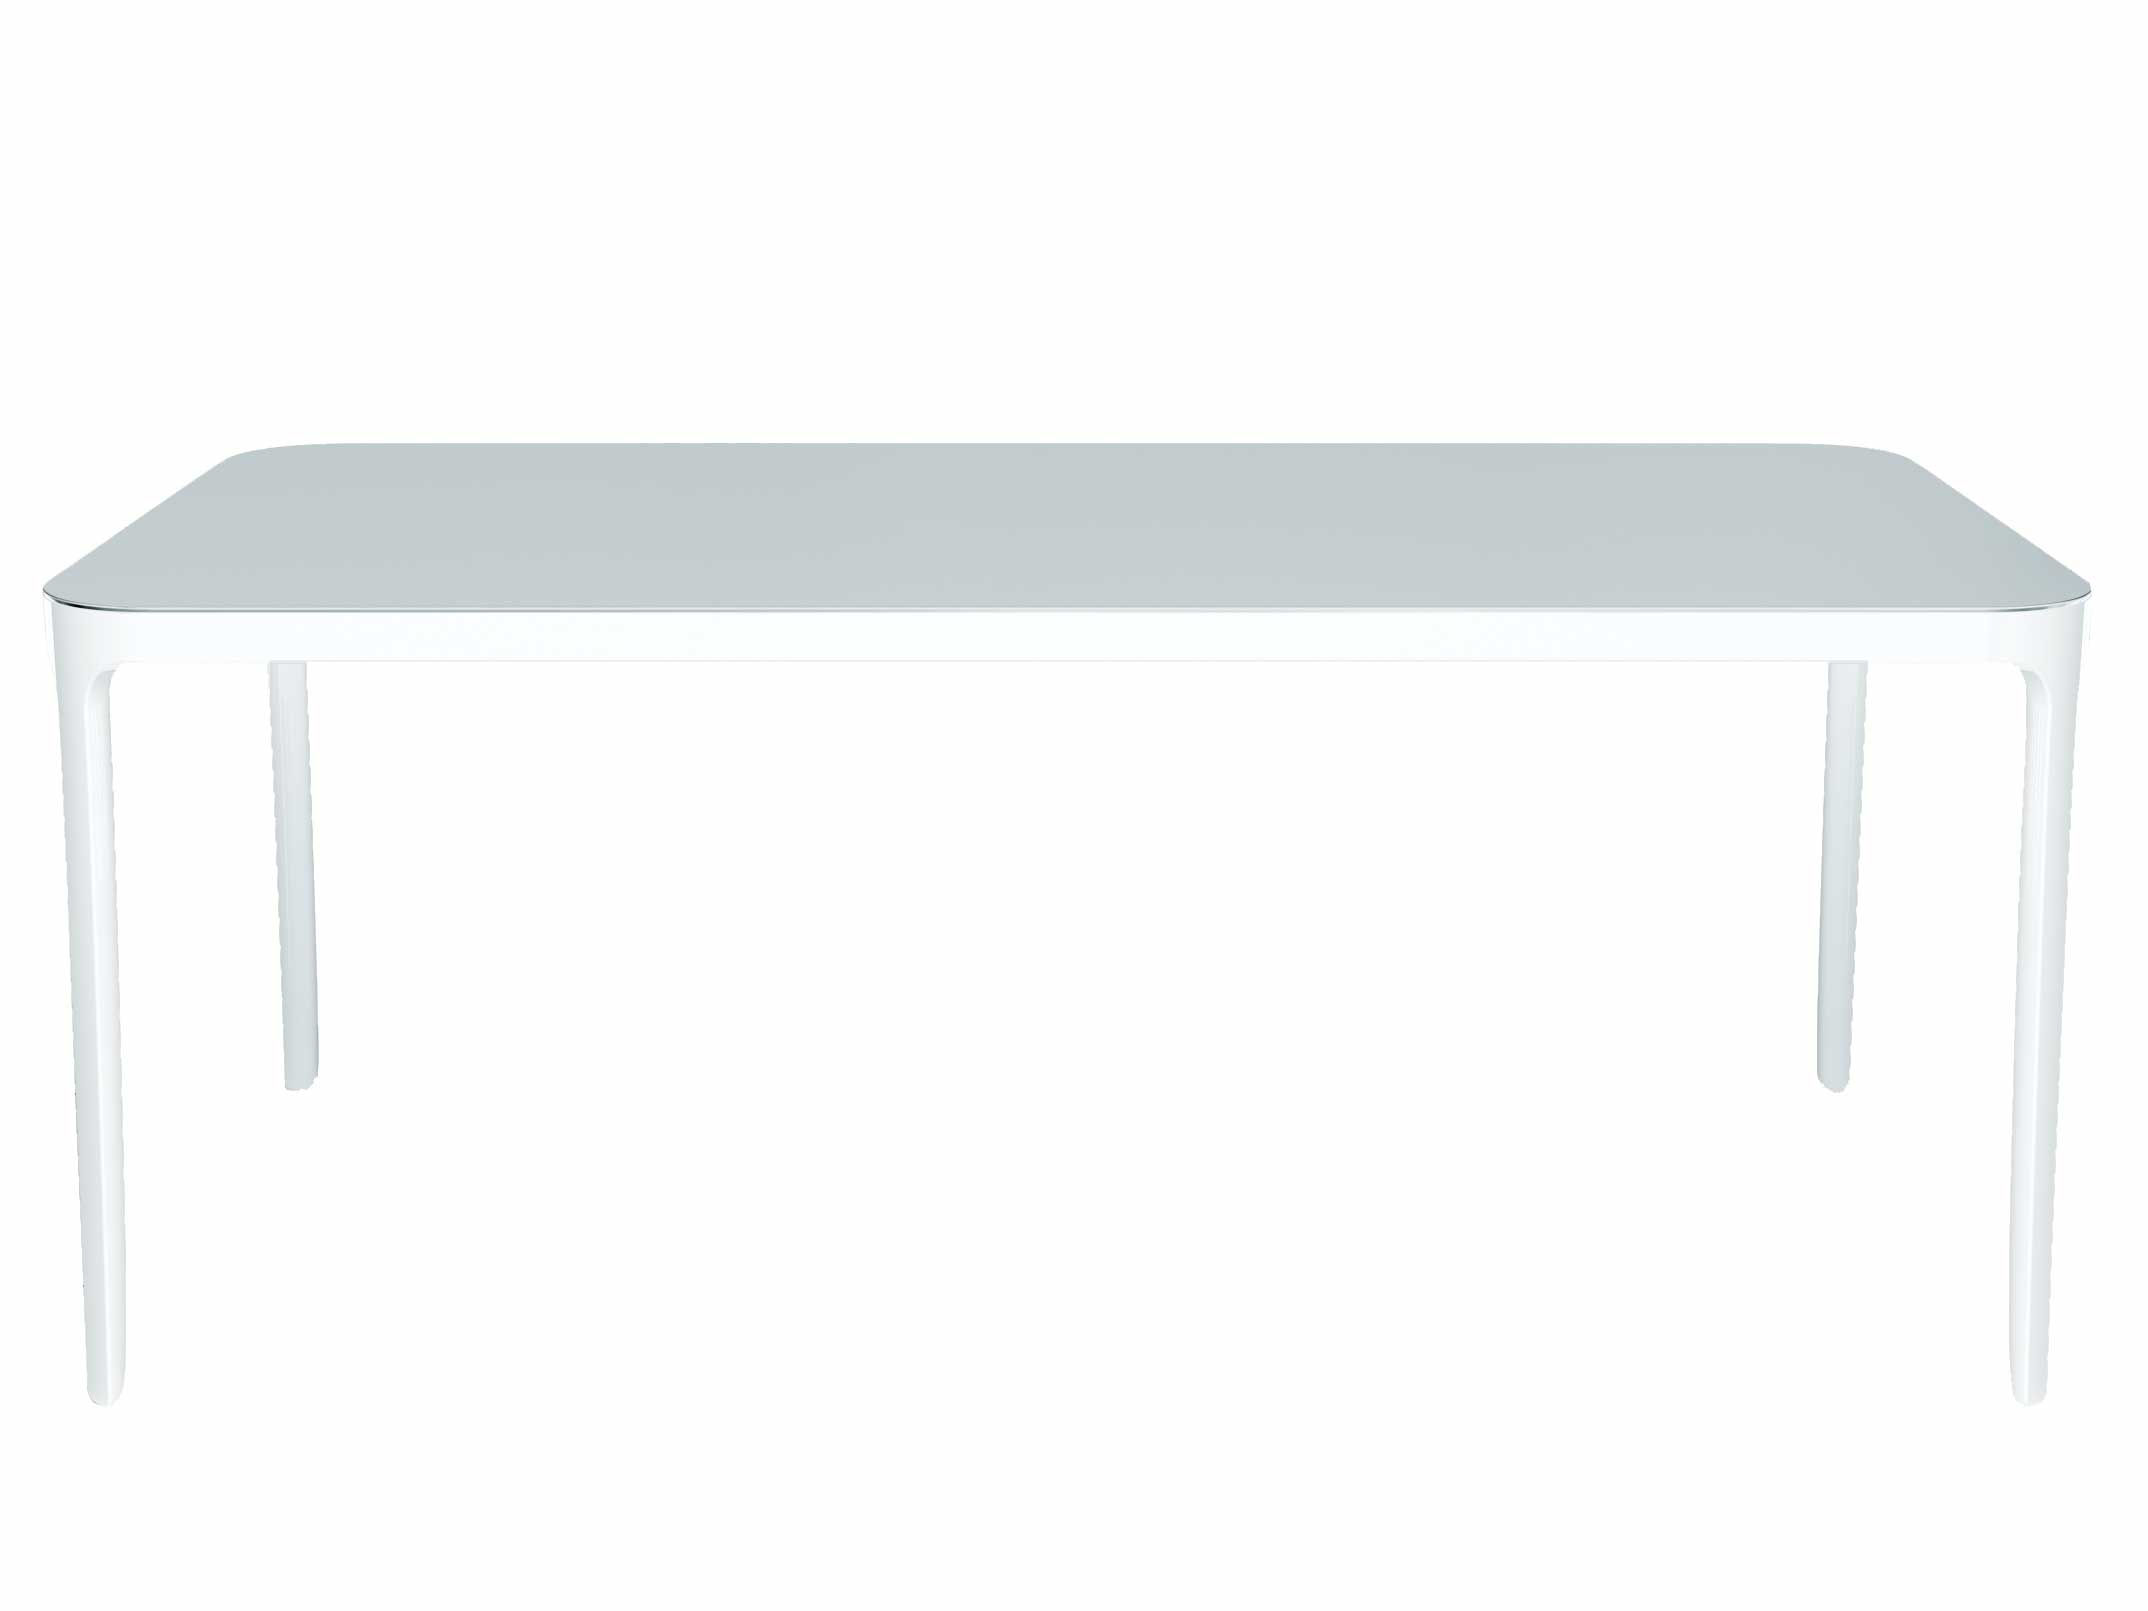 Back to school - Office furniture - Vanity Table - Rectangular - 140 x 80 cm by Magis - 140 x 80 cm / White - Varnished aluminium, Varnished glass